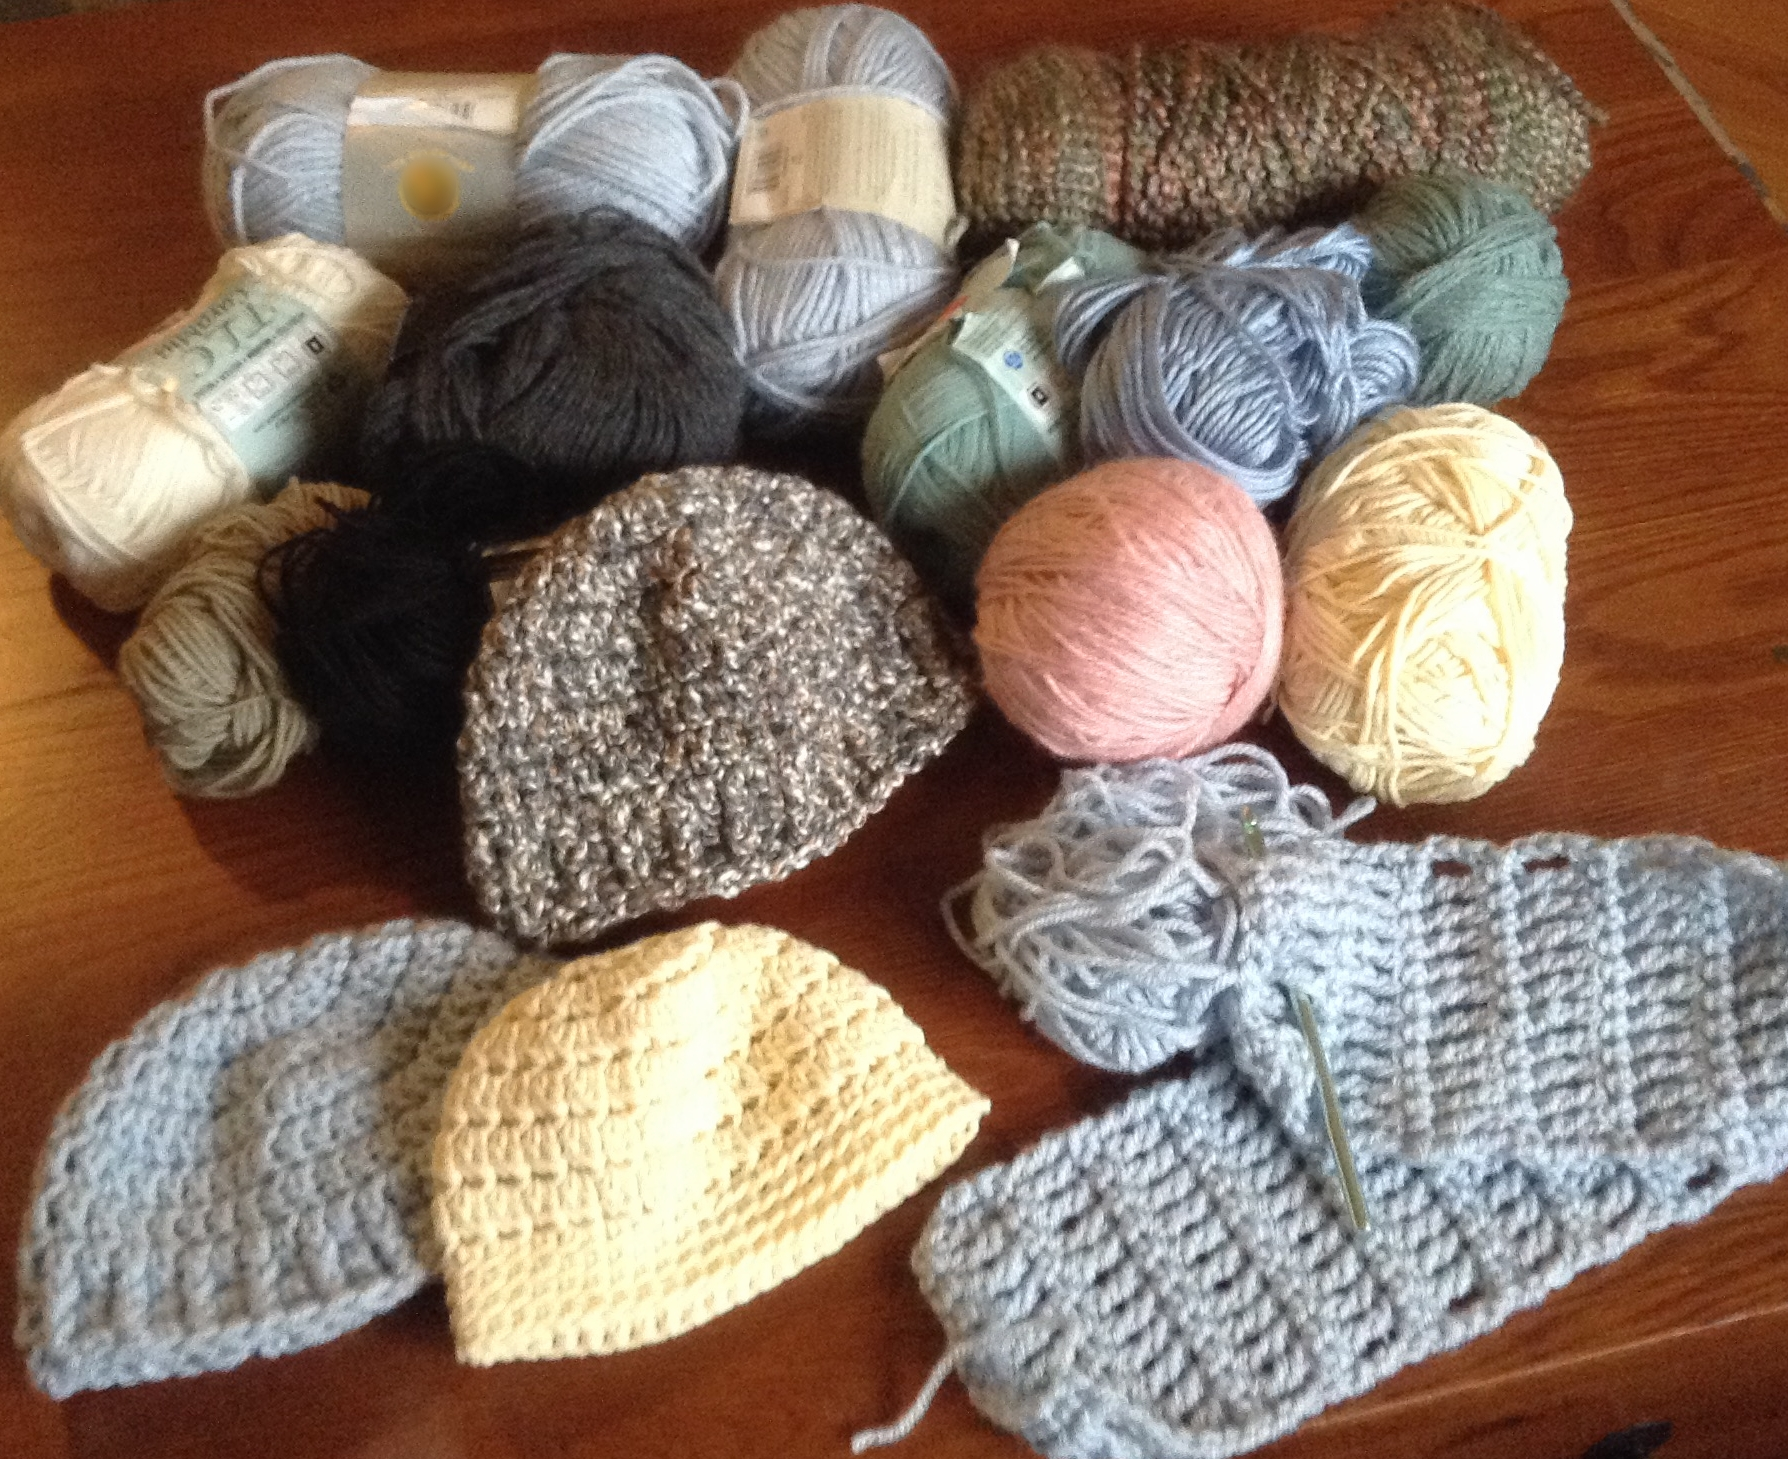 So much yarn, so little time